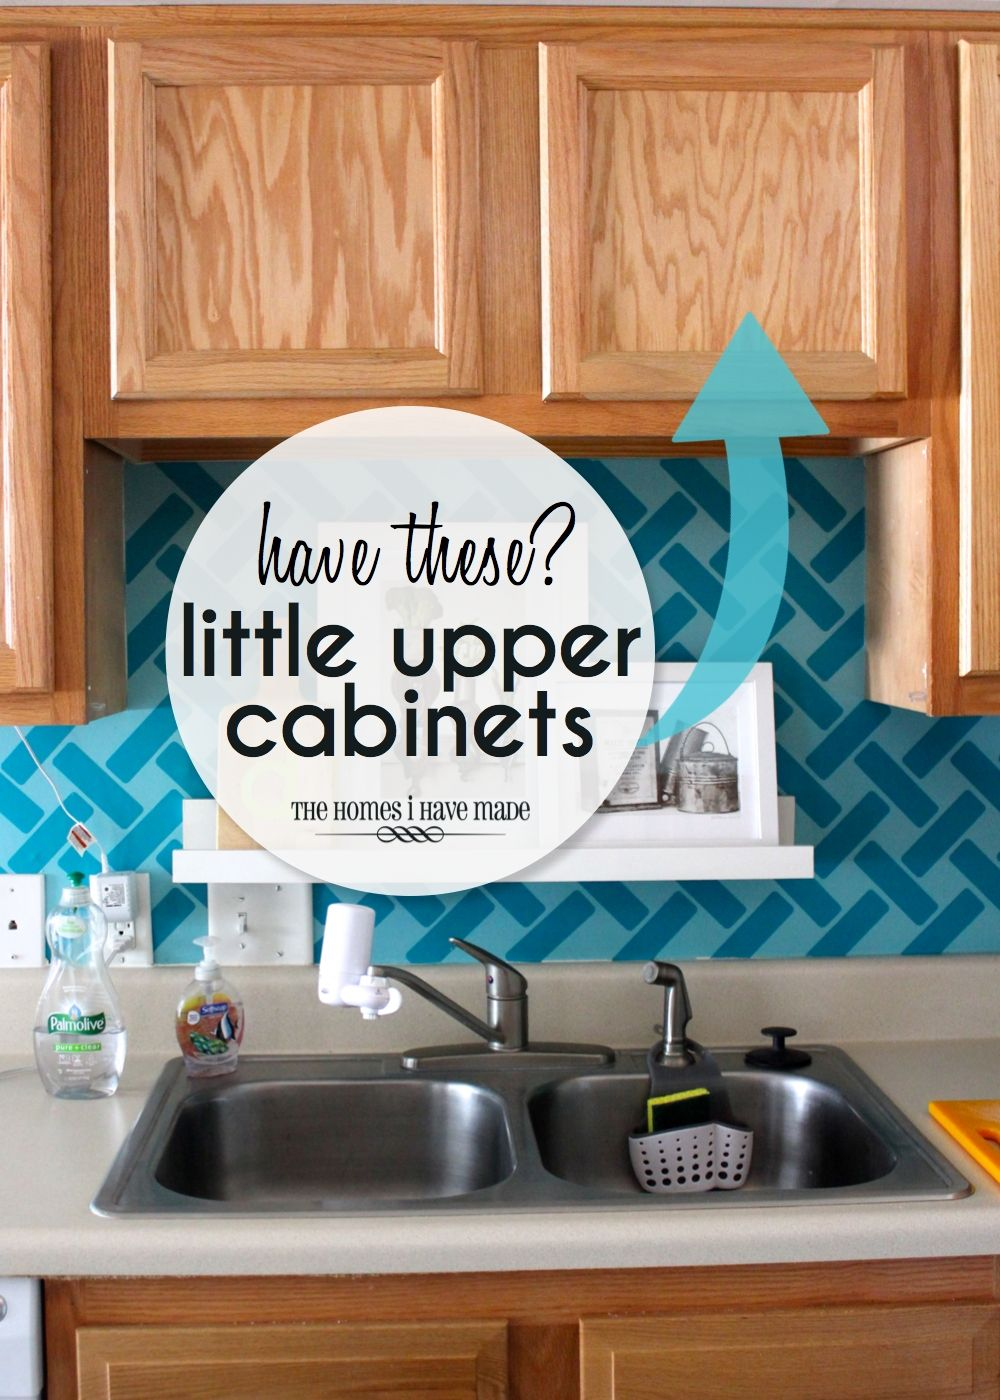 Storage Ideas For Little Upper Cabinets The Homes I Have Made Upper Kitchen Cabinets Kitchen Organization Diy Kitchen Hacks Organization